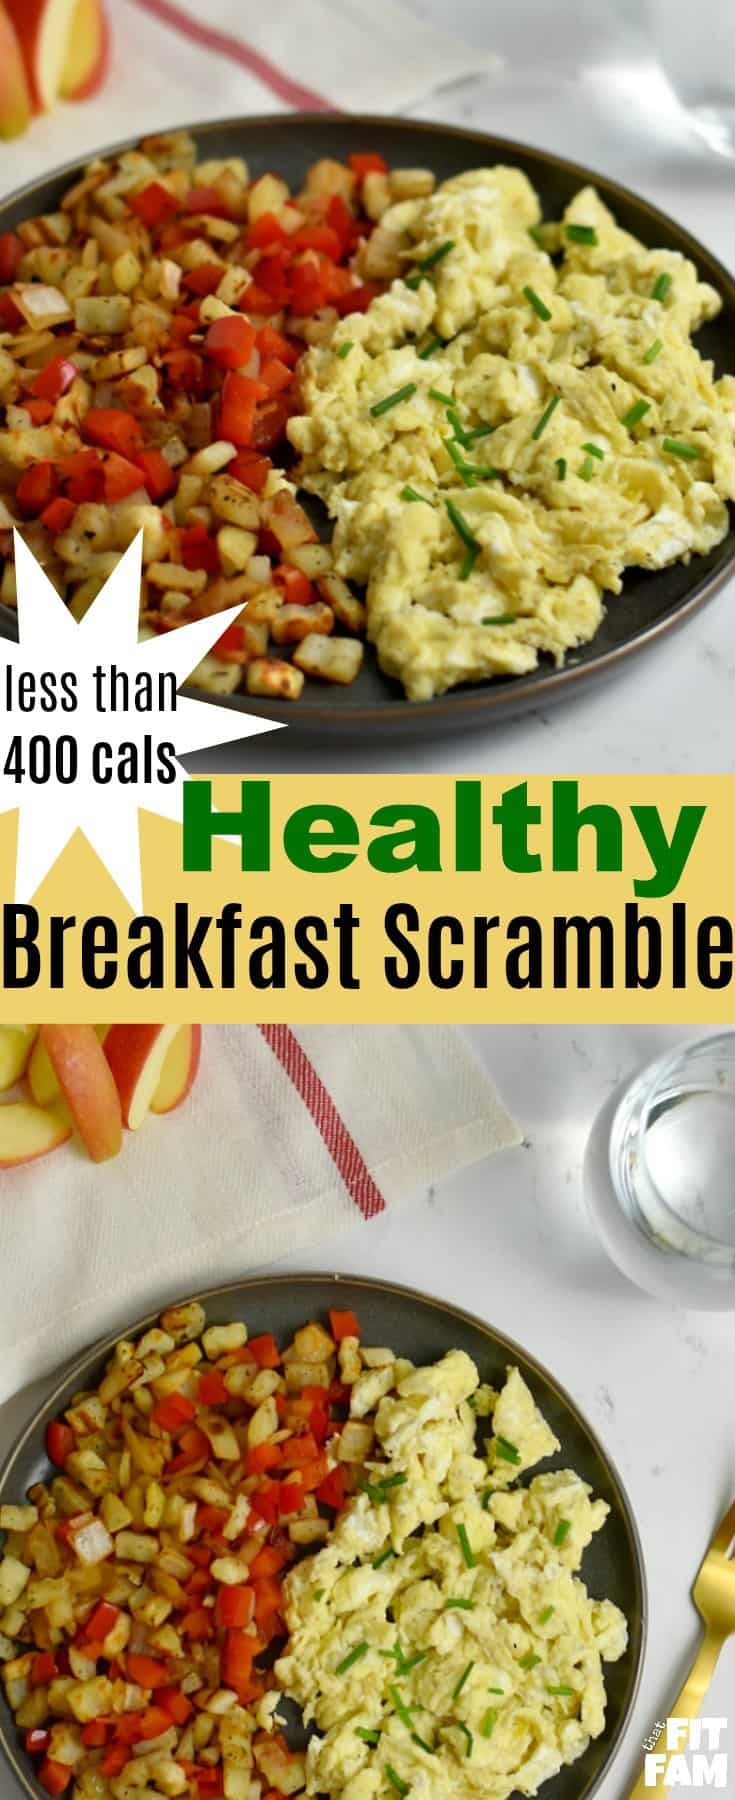 healthy breakfast scramble, under 400 calories, it's super easy and delicious egg breakfast. recipe measured to the gram for macro/ iifym diet